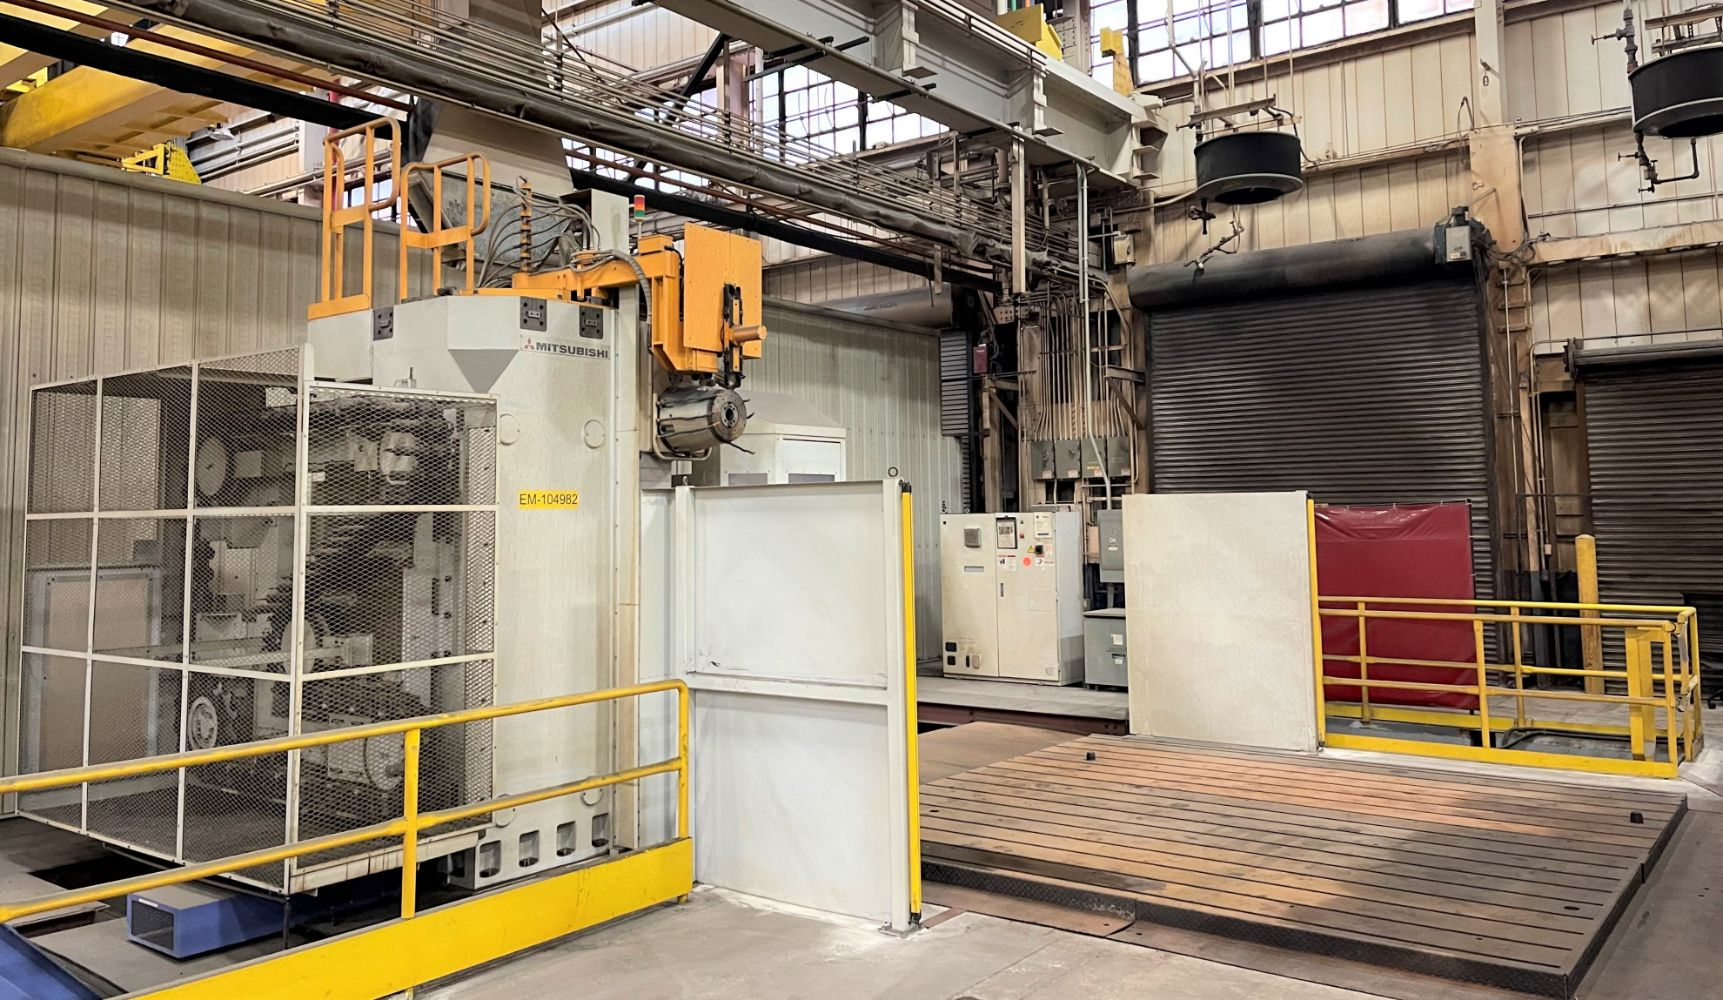 Day 1 of 4 - UNPRECEDENTED OPPORTUNITY Due to Closure of a 1M Sq Ft Locomotive Mfg Facility - MULTI-DAY | 5,000 Lots of Machines & Equipment